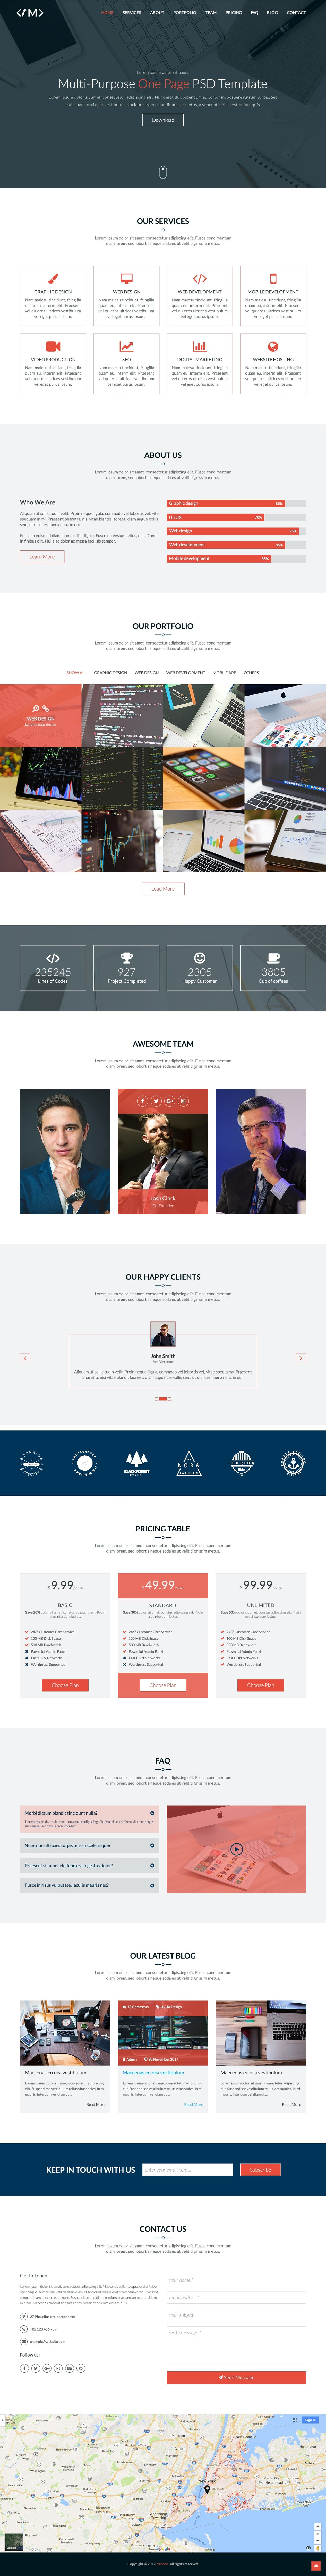 MTheme - Multi-Purpose One Page PSD Template Screenshot 9